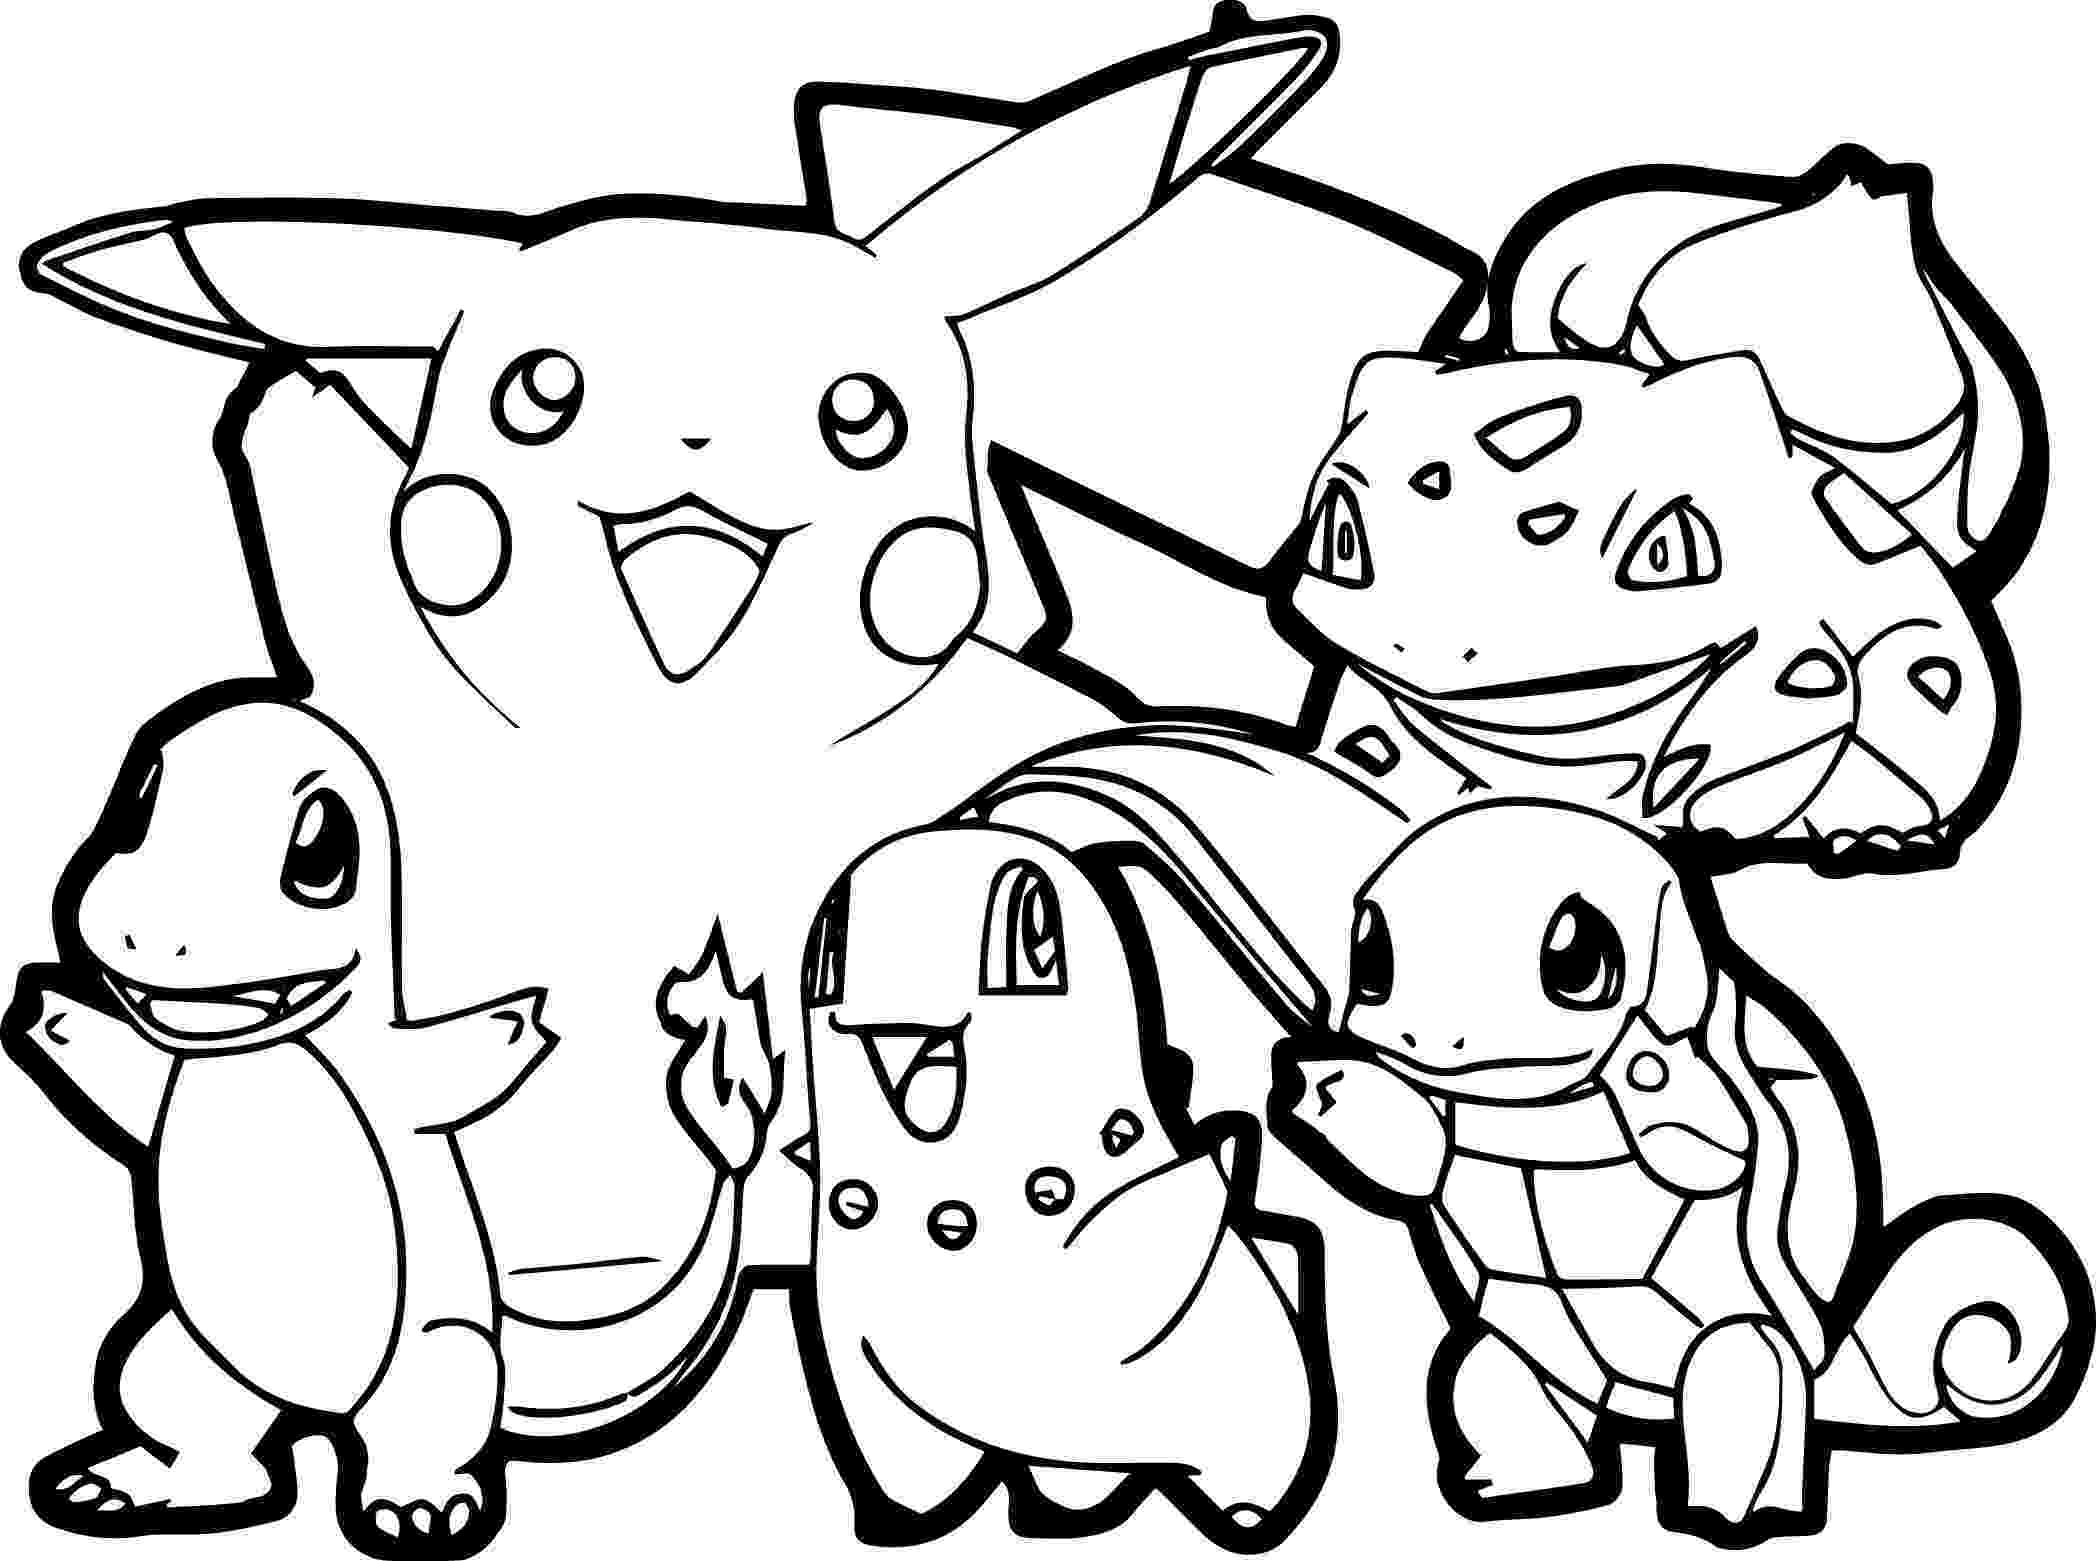 pokemon coloring games if you color this in just right a few gaming logos might games pokemon coloring